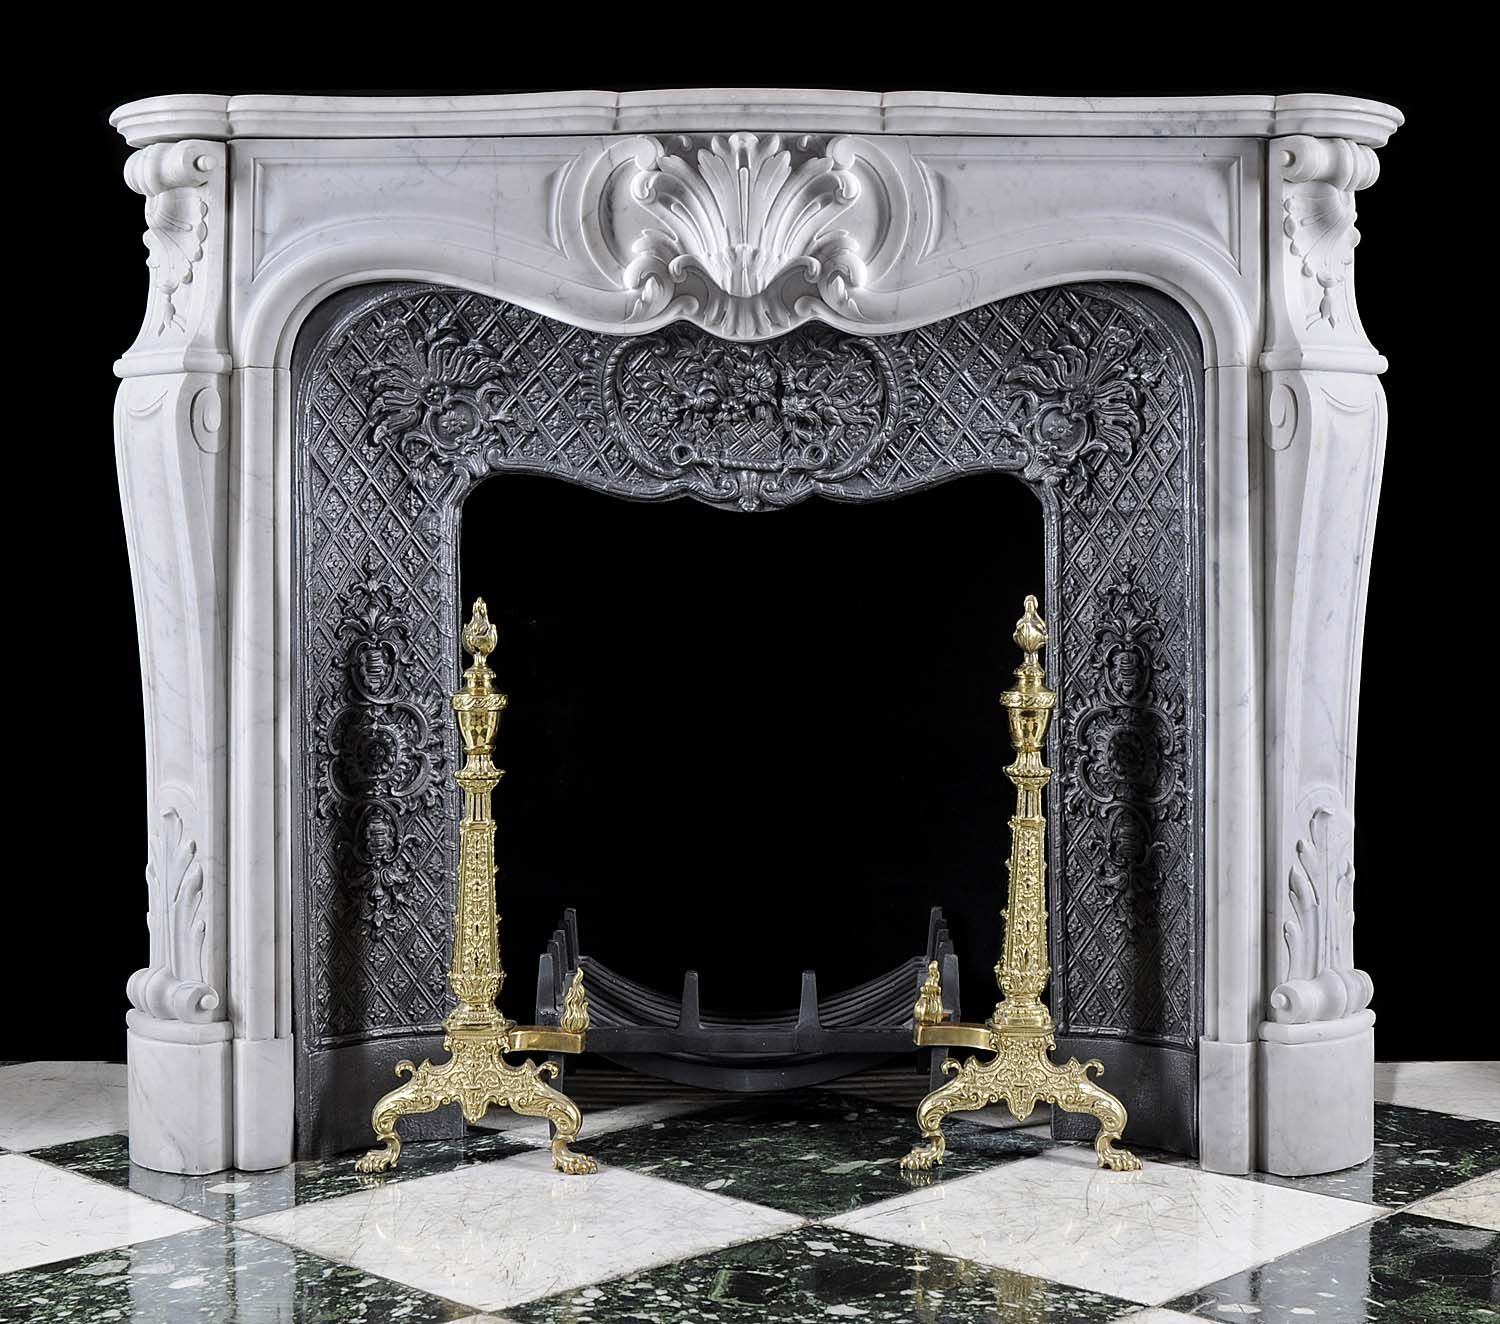 Fireplace Mantel White Antique White Marble Louis Xv Fireplace Mantel Heritage